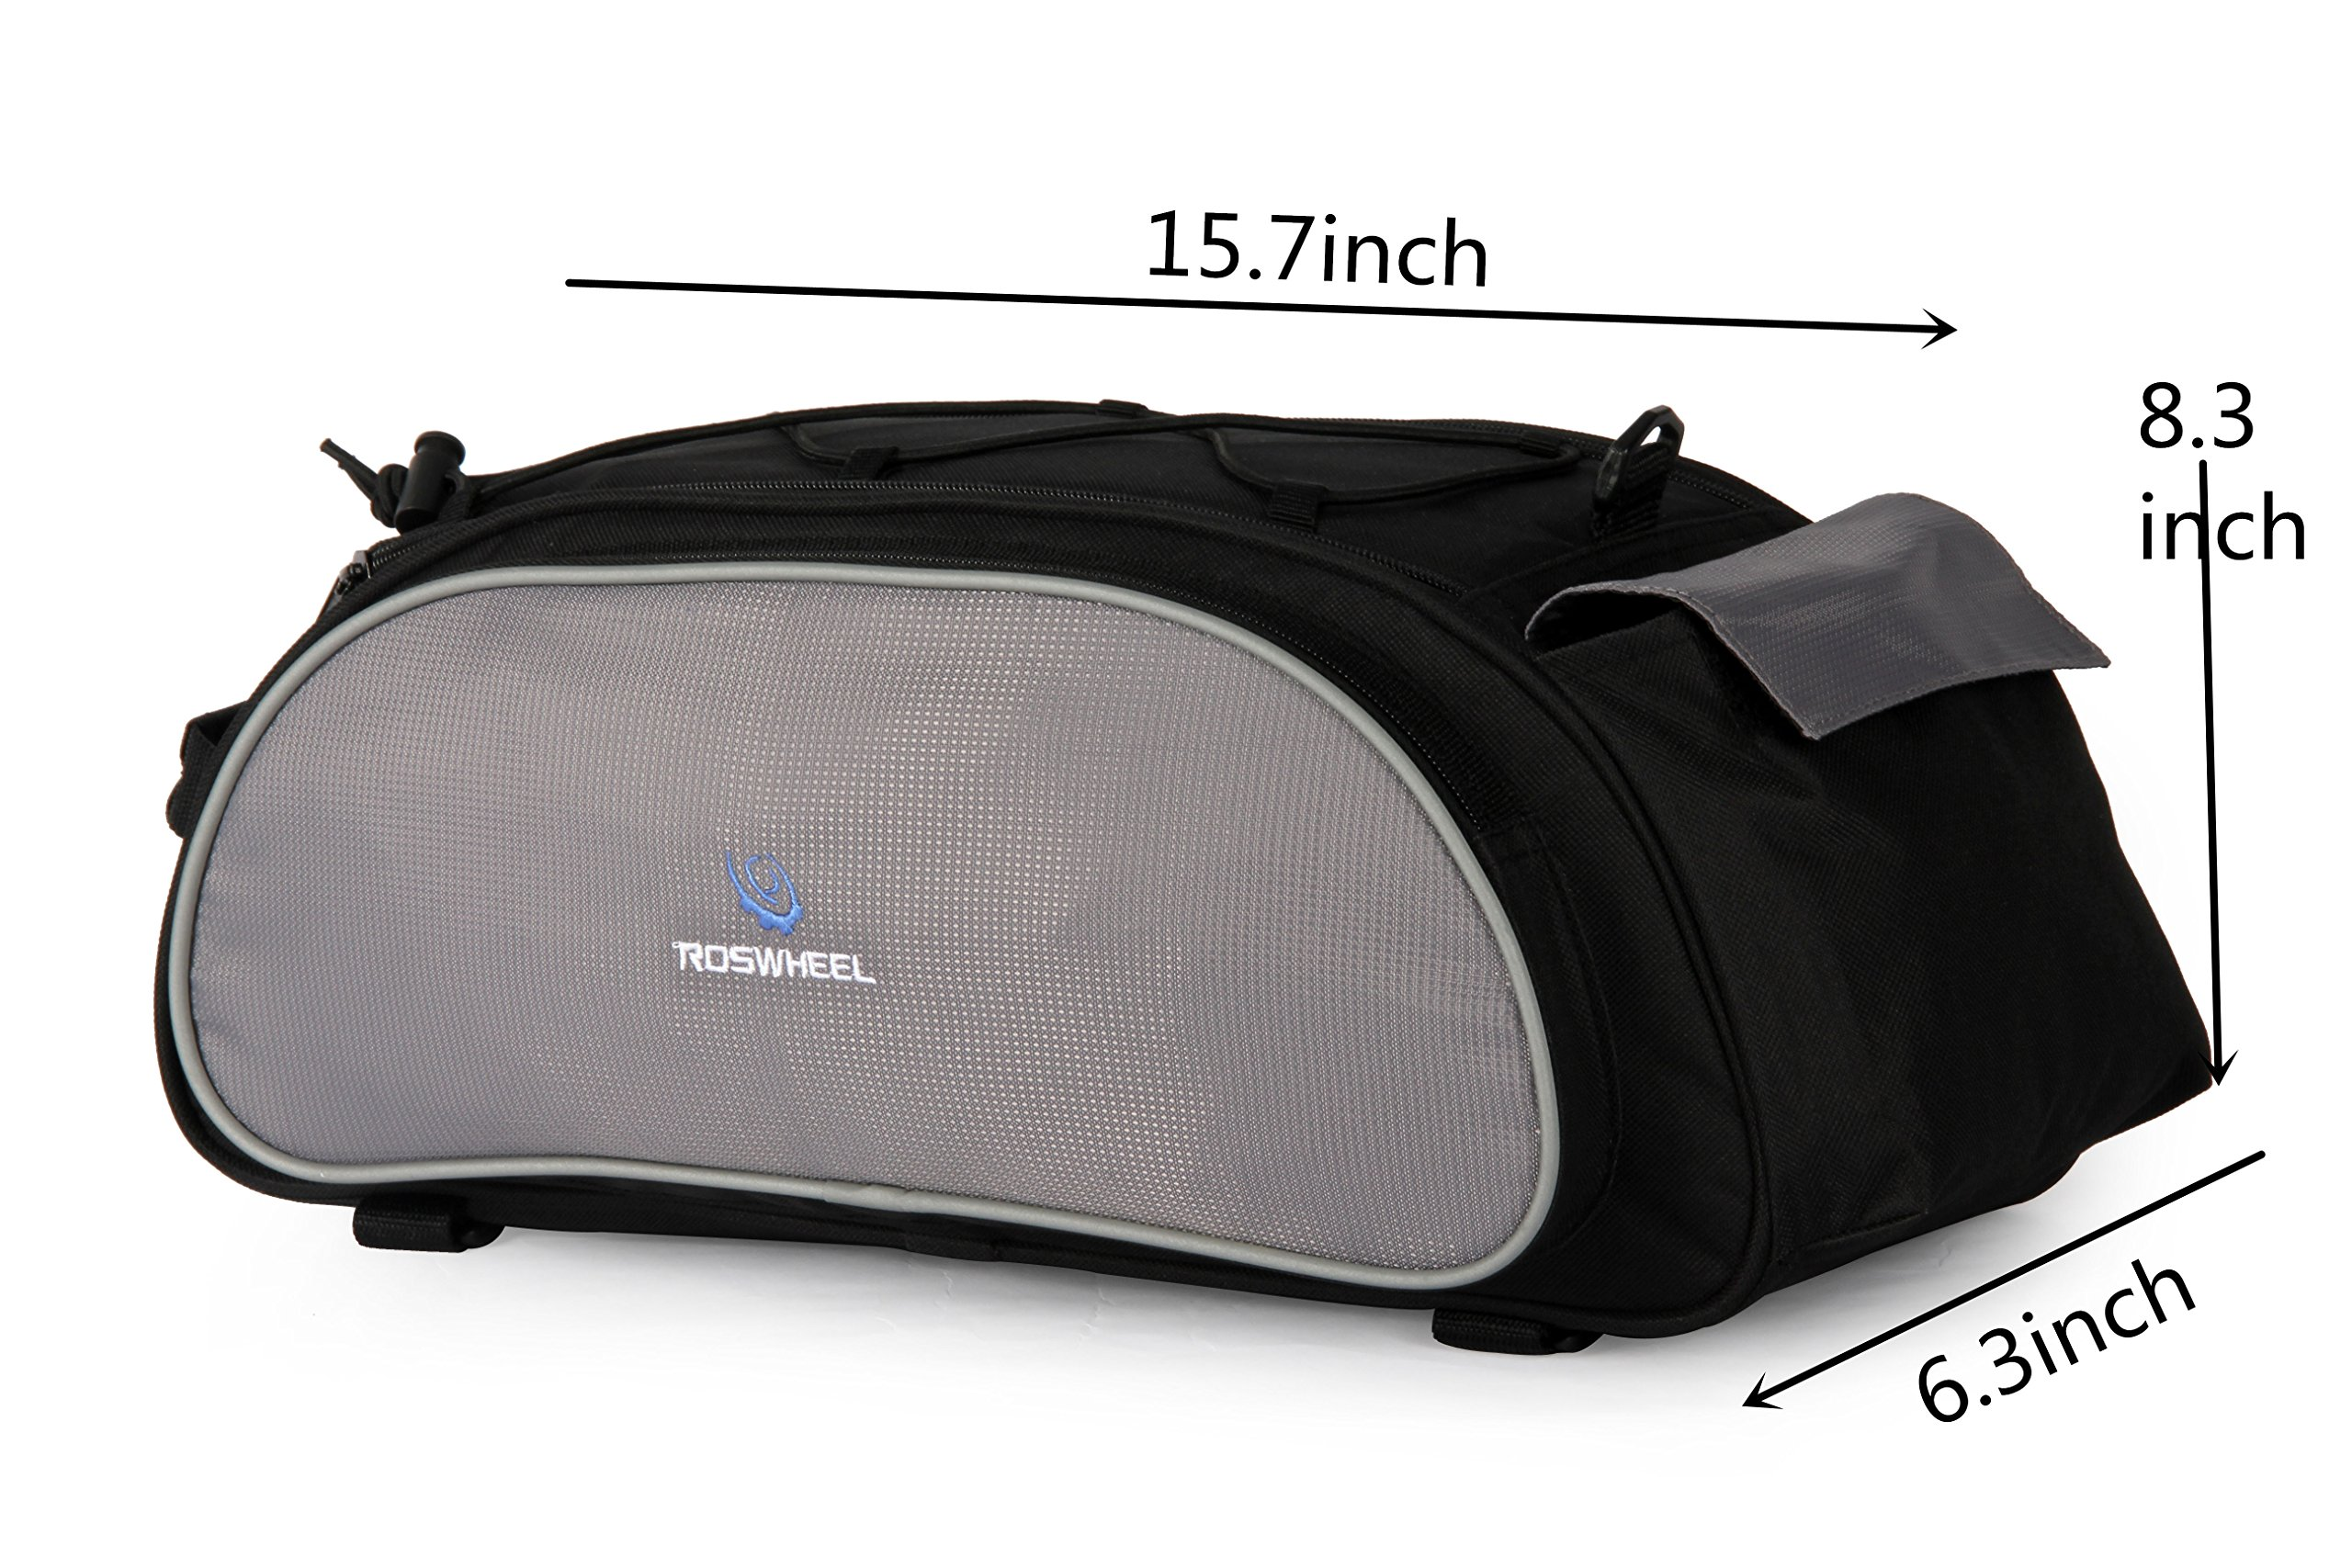 Best Fit For U Roswheel Bicycle Cycling Bike Saddle Rack Seat Cargo Bag Rear Pack Trunk Pannier Handbag Blue Outdoor Traveling New(Black) by SunbowStar (Image #4)